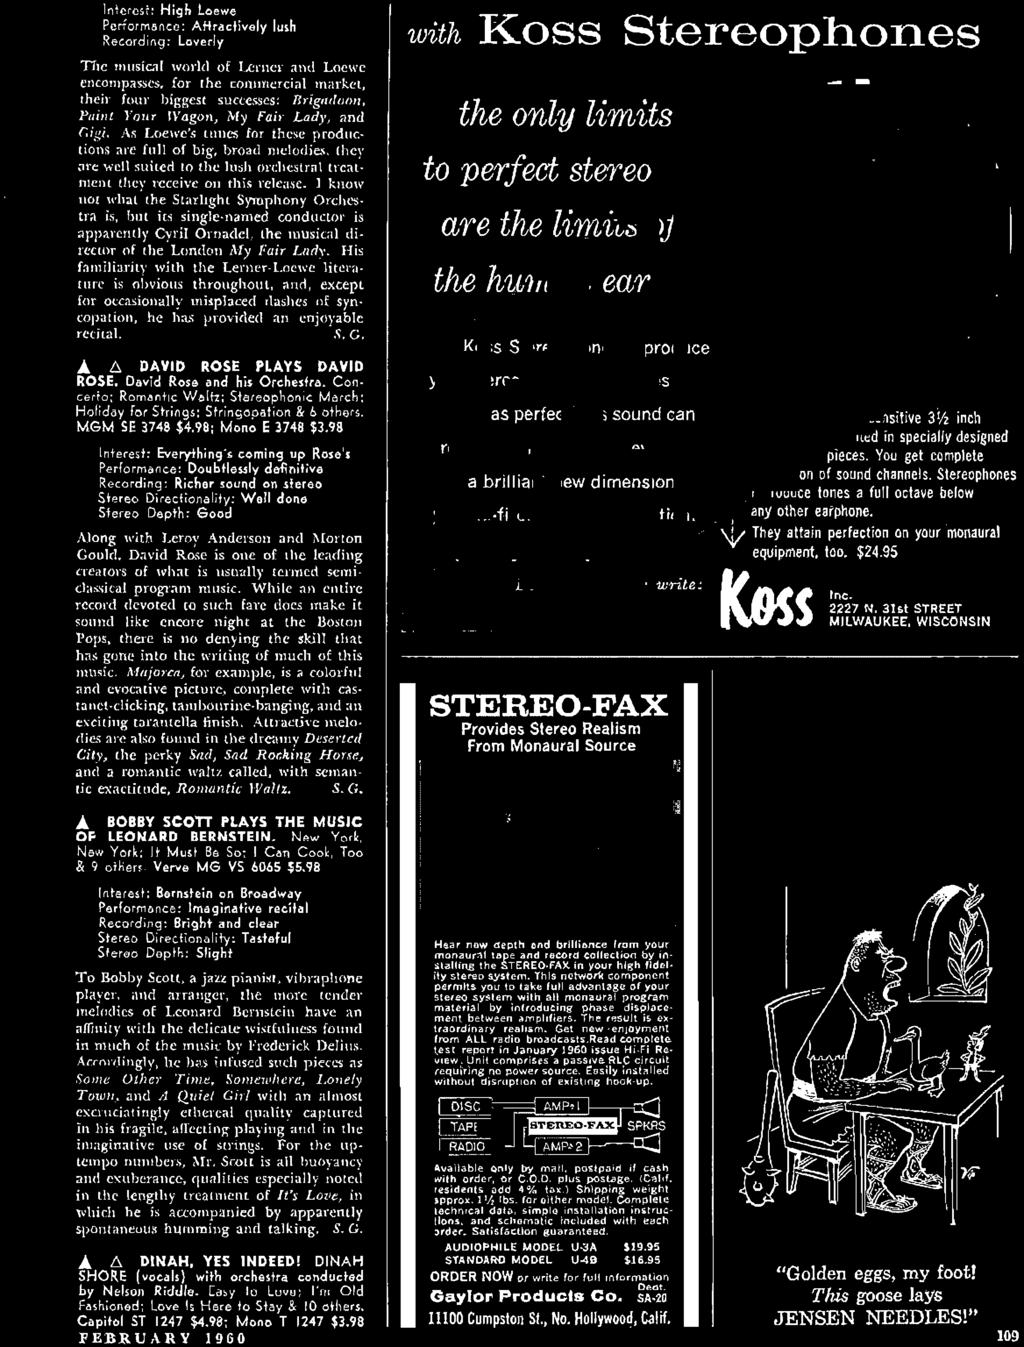 98 FEBRUARY 1960 Hear new depth and brilliance from your m onaural tape and record collection by insta lling the STER EO FAX in your high fidel ity stereo system.